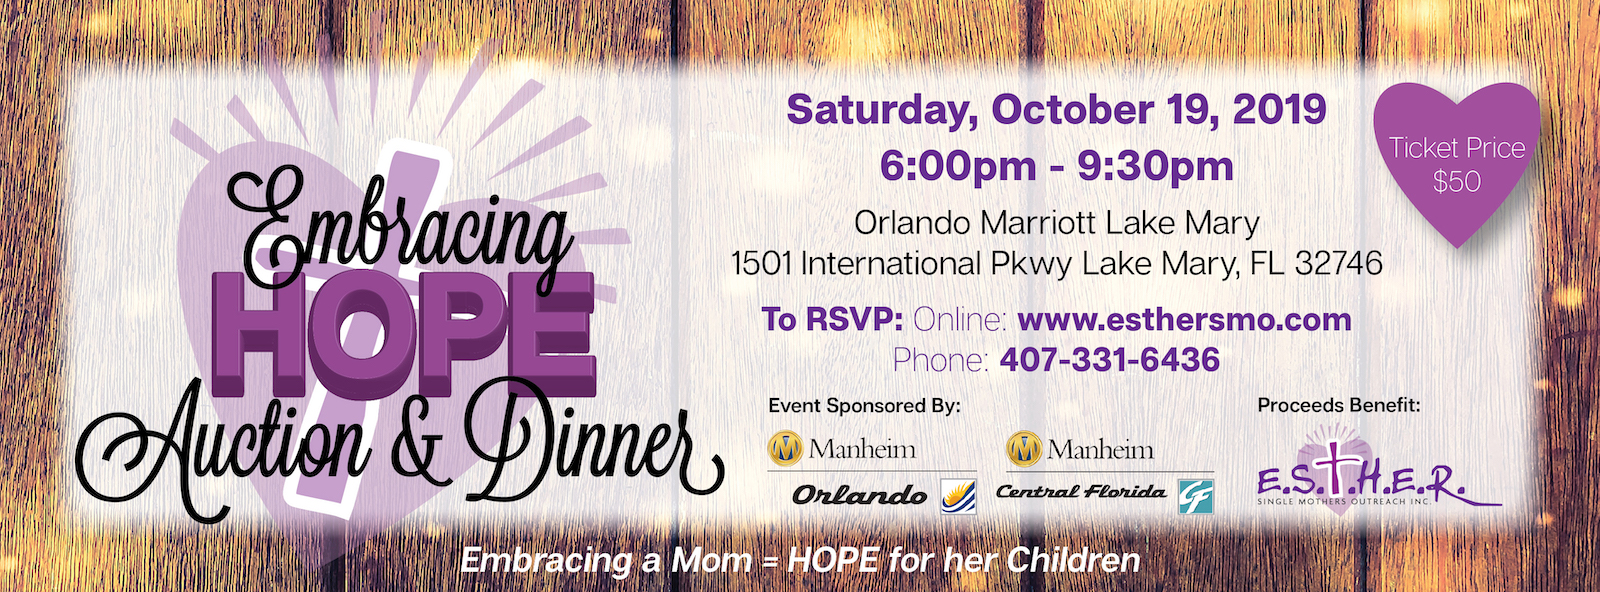 Embracing Hope Auction Dinner